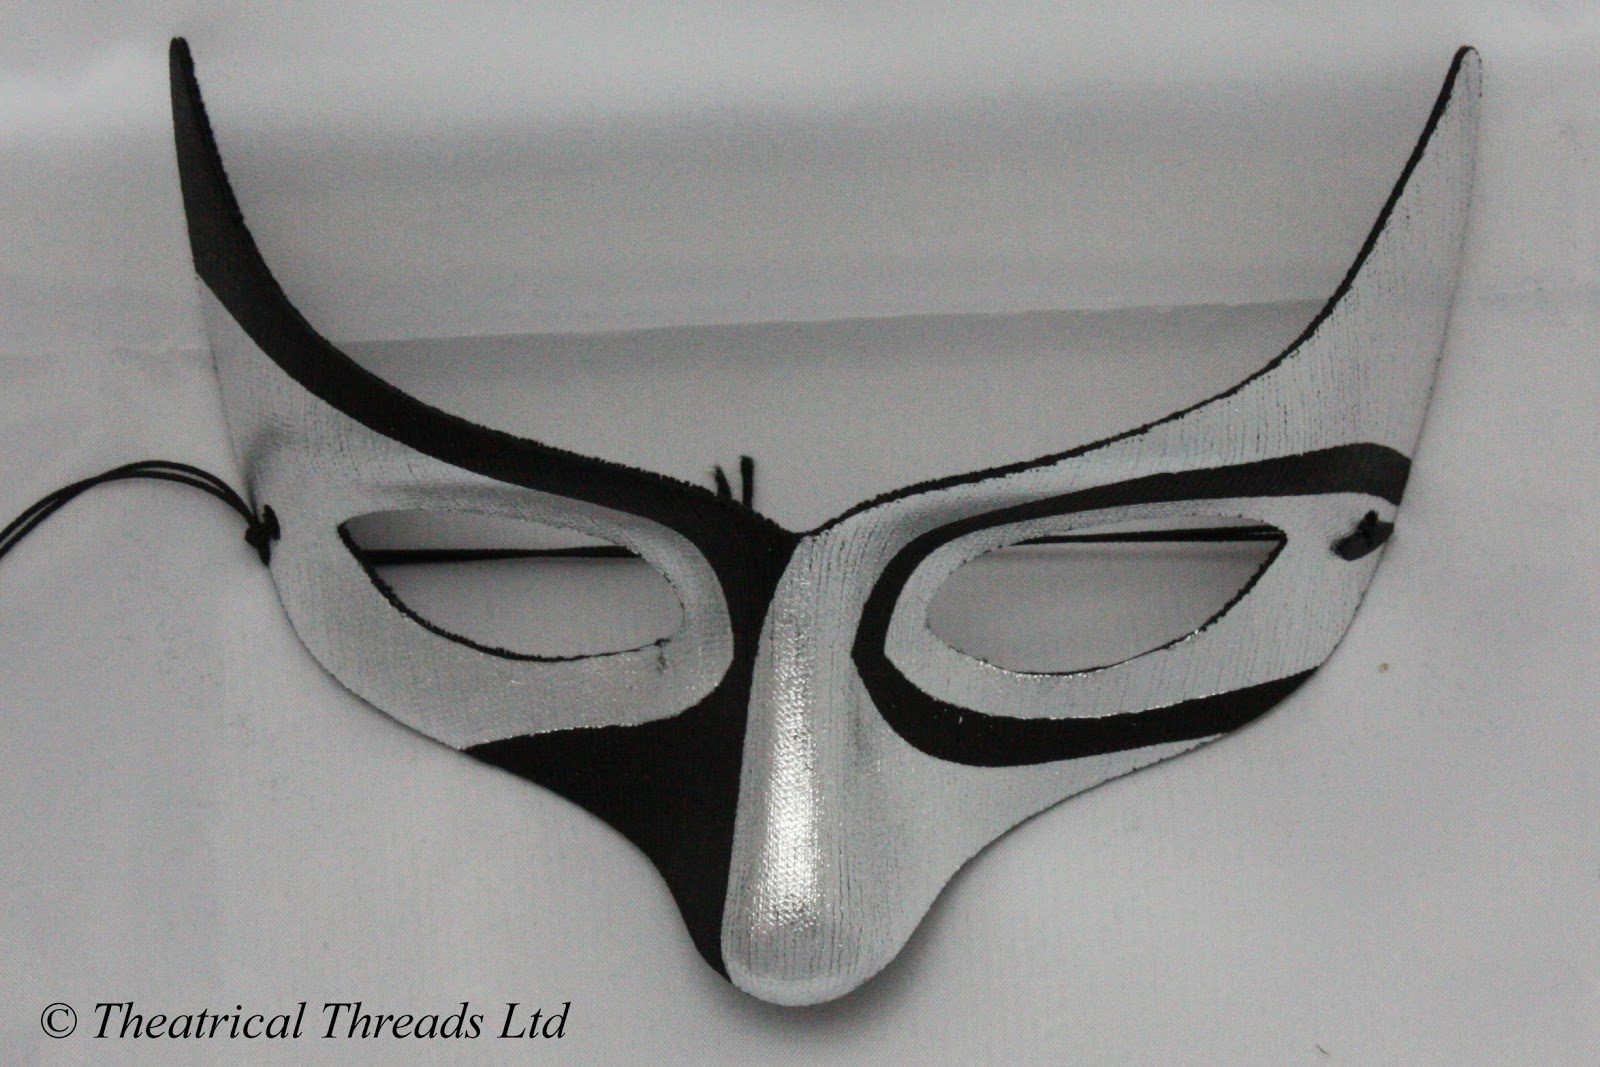 af04ec6b6242 Macumba Black & Silver Masquerade Ball Mask from Theatrical Threads Ltd